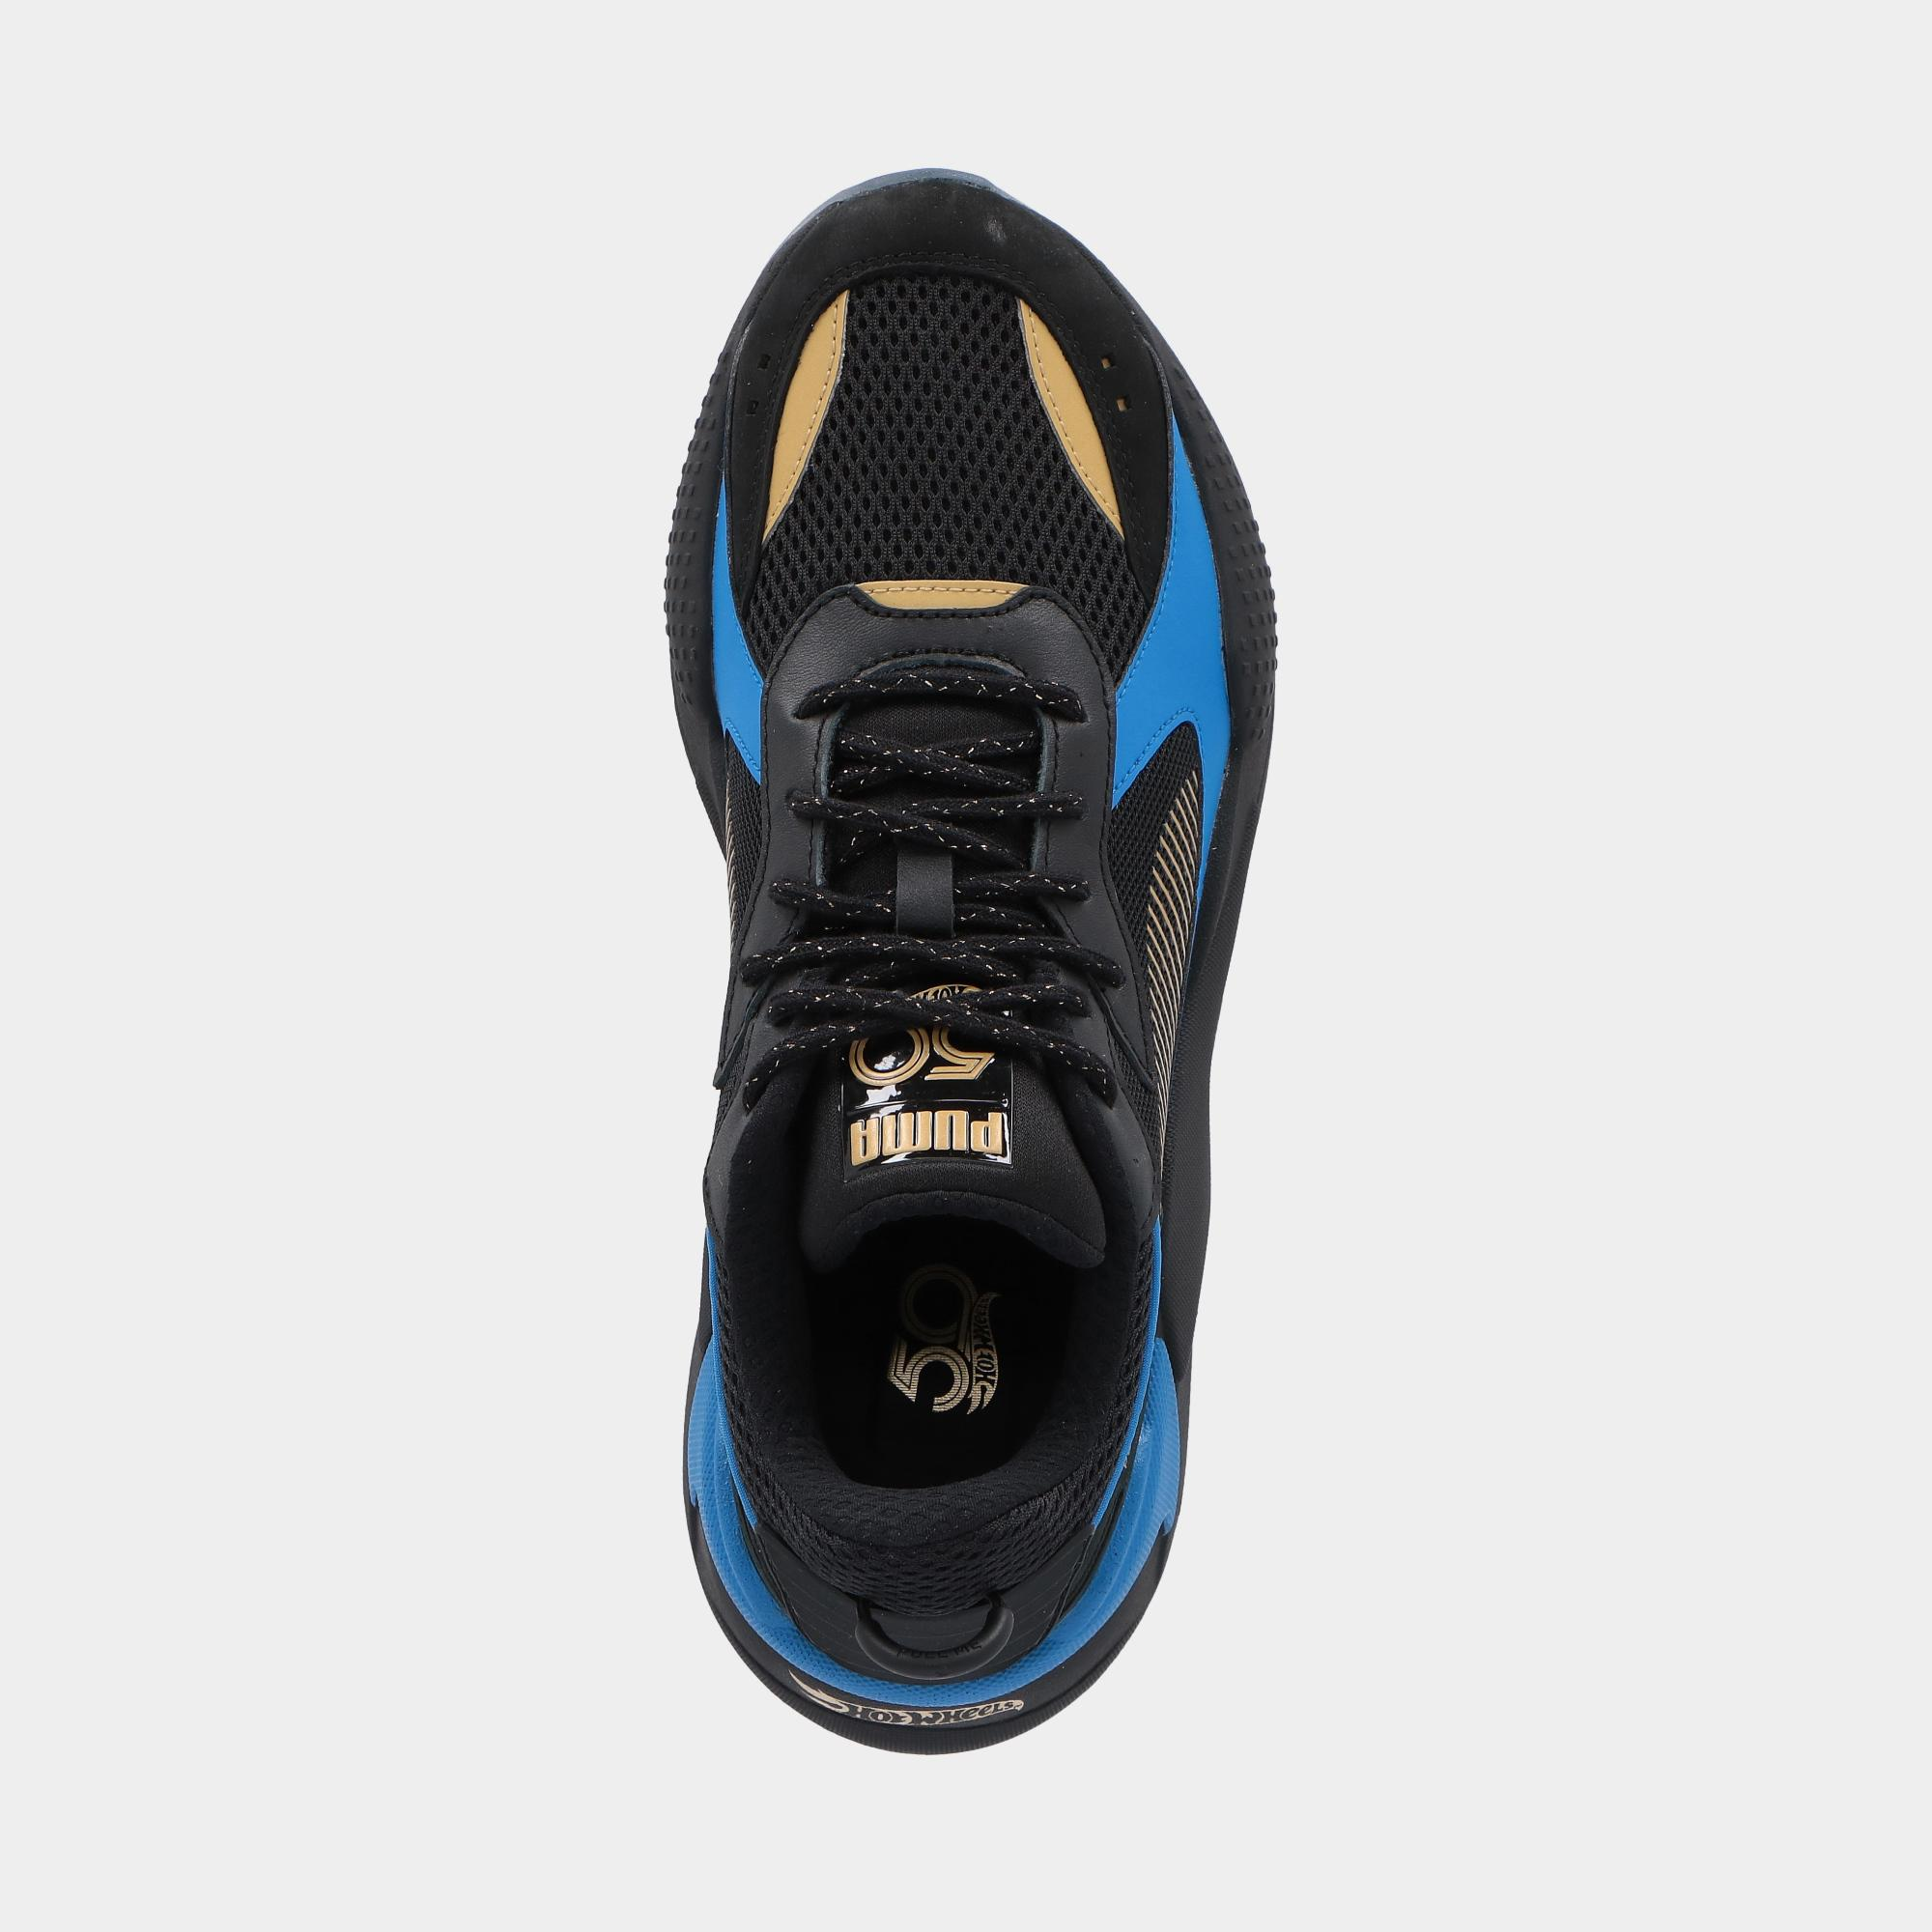 Puma X Hot Wheels Rs-x Toys 16 Puma black puma team gold